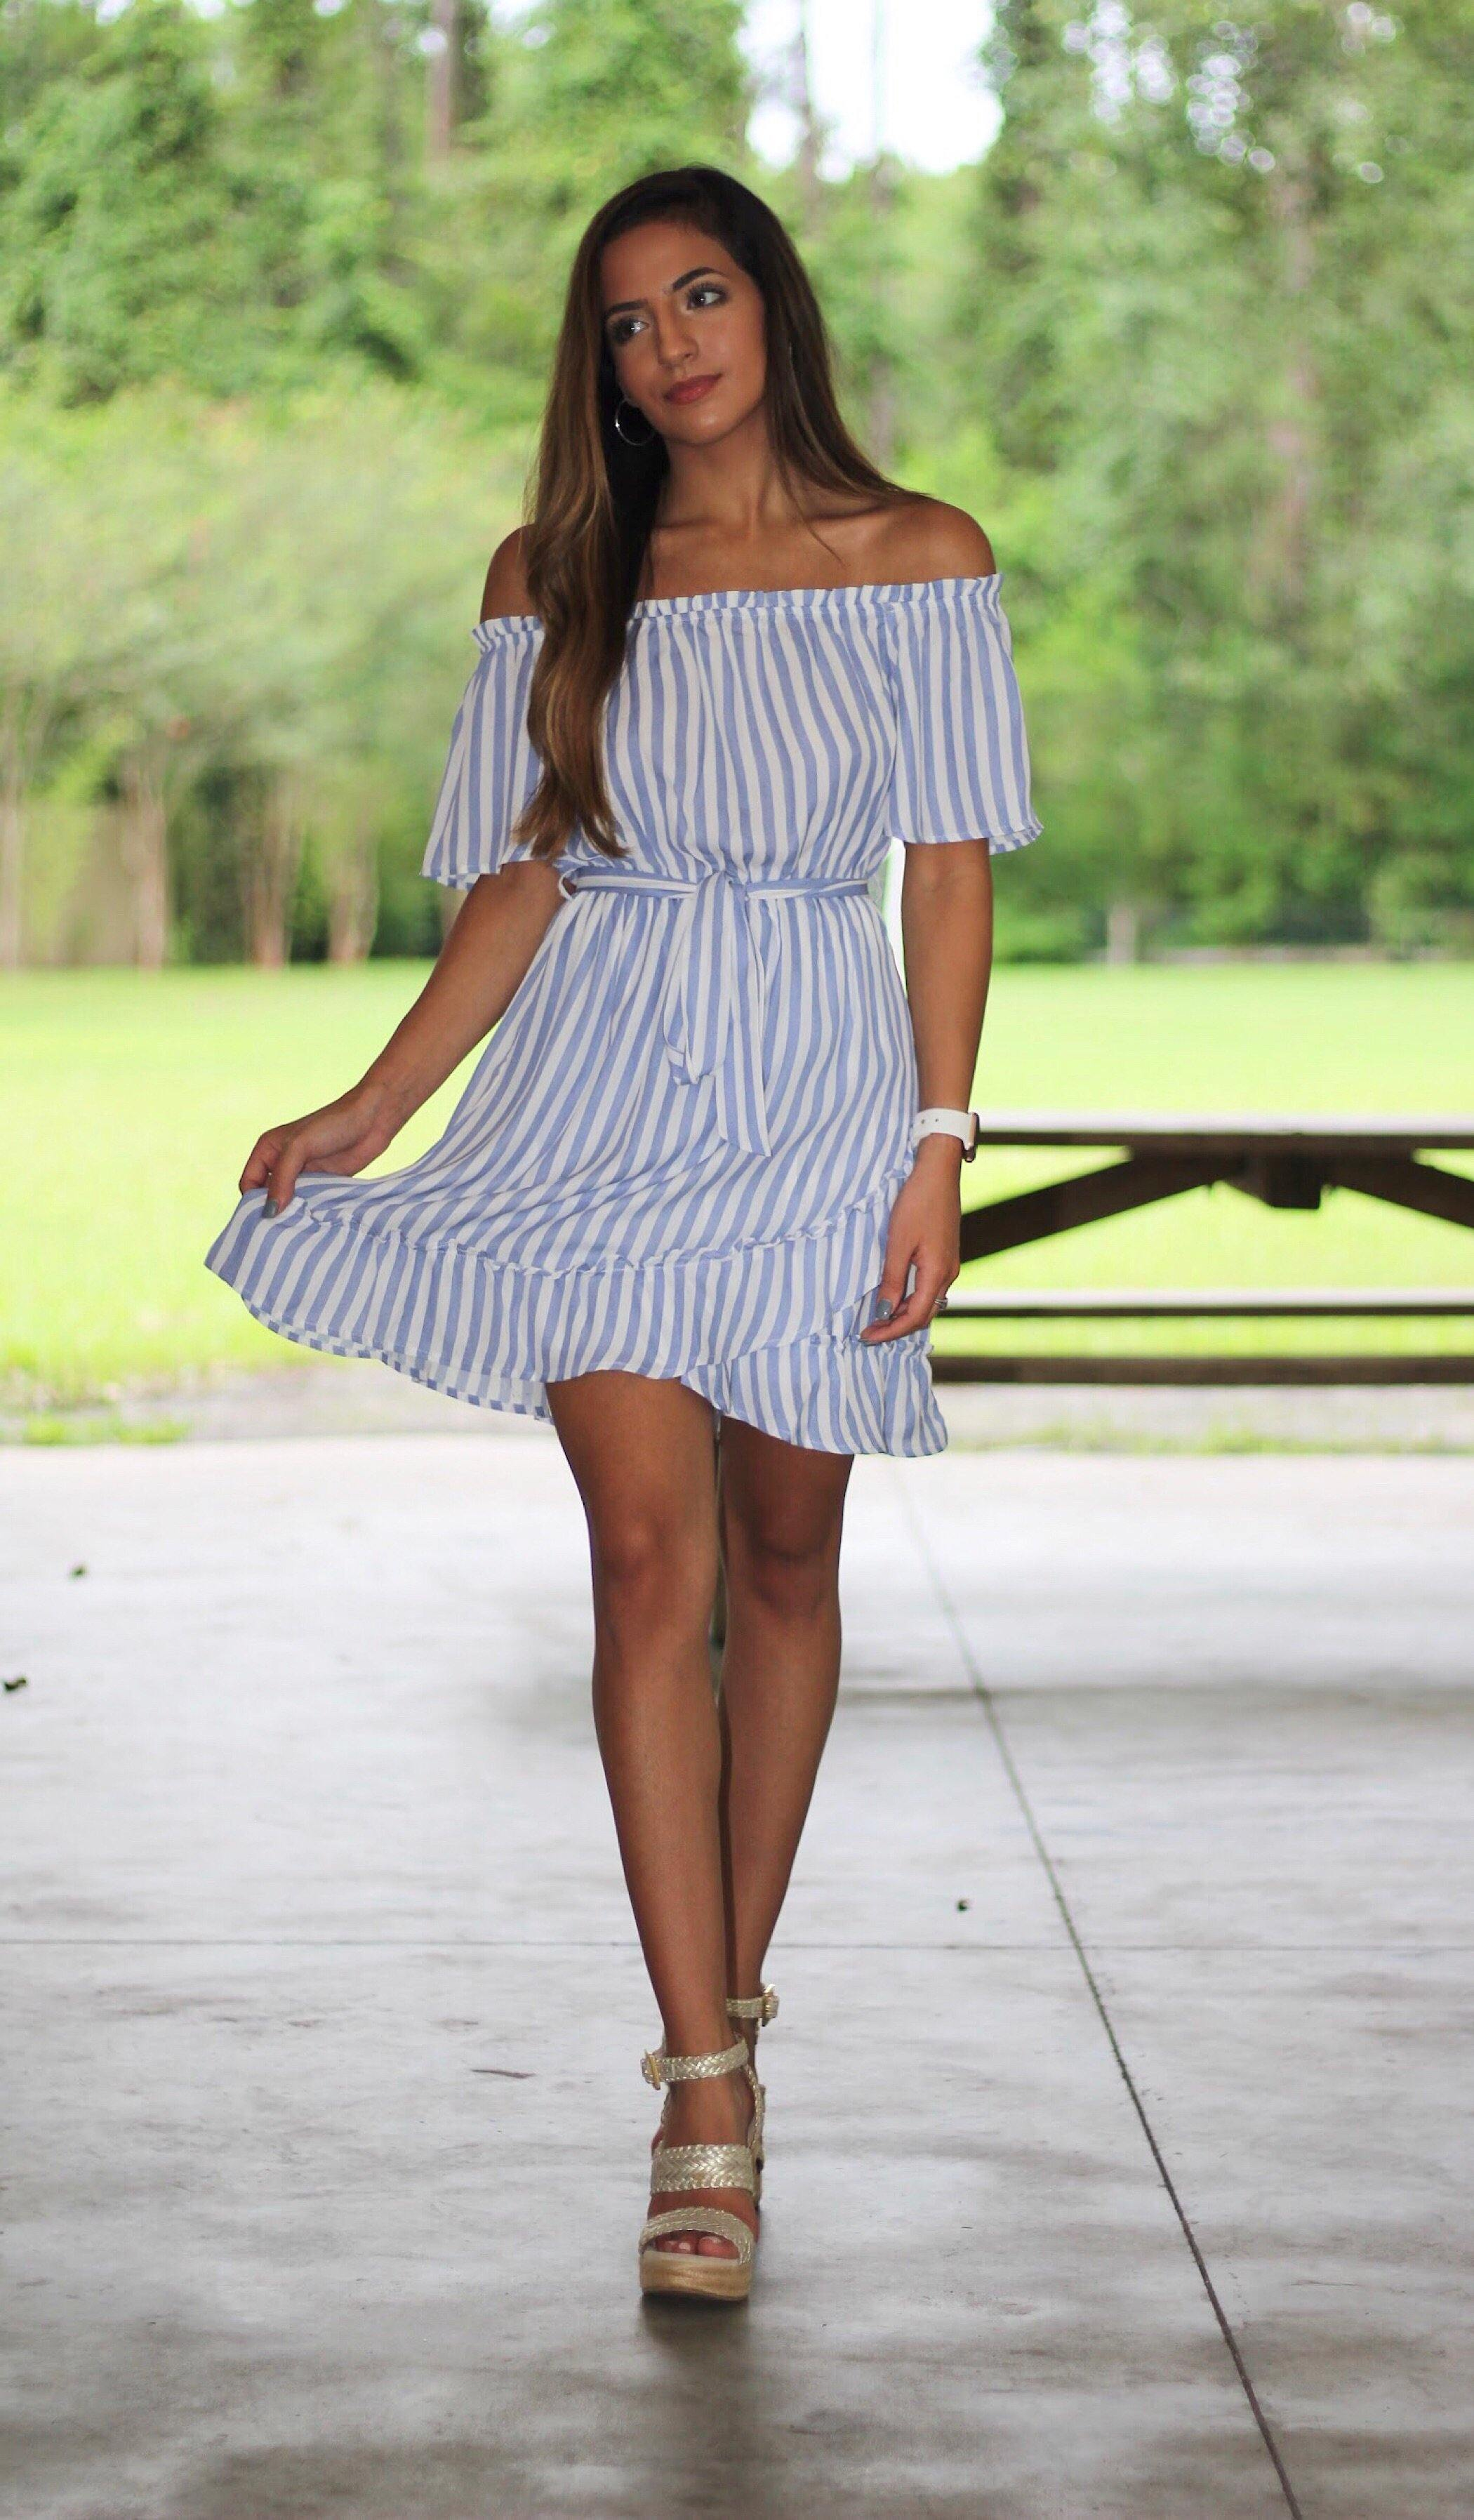 SHAY STRIPED DRESS - elbie boutique, LLC